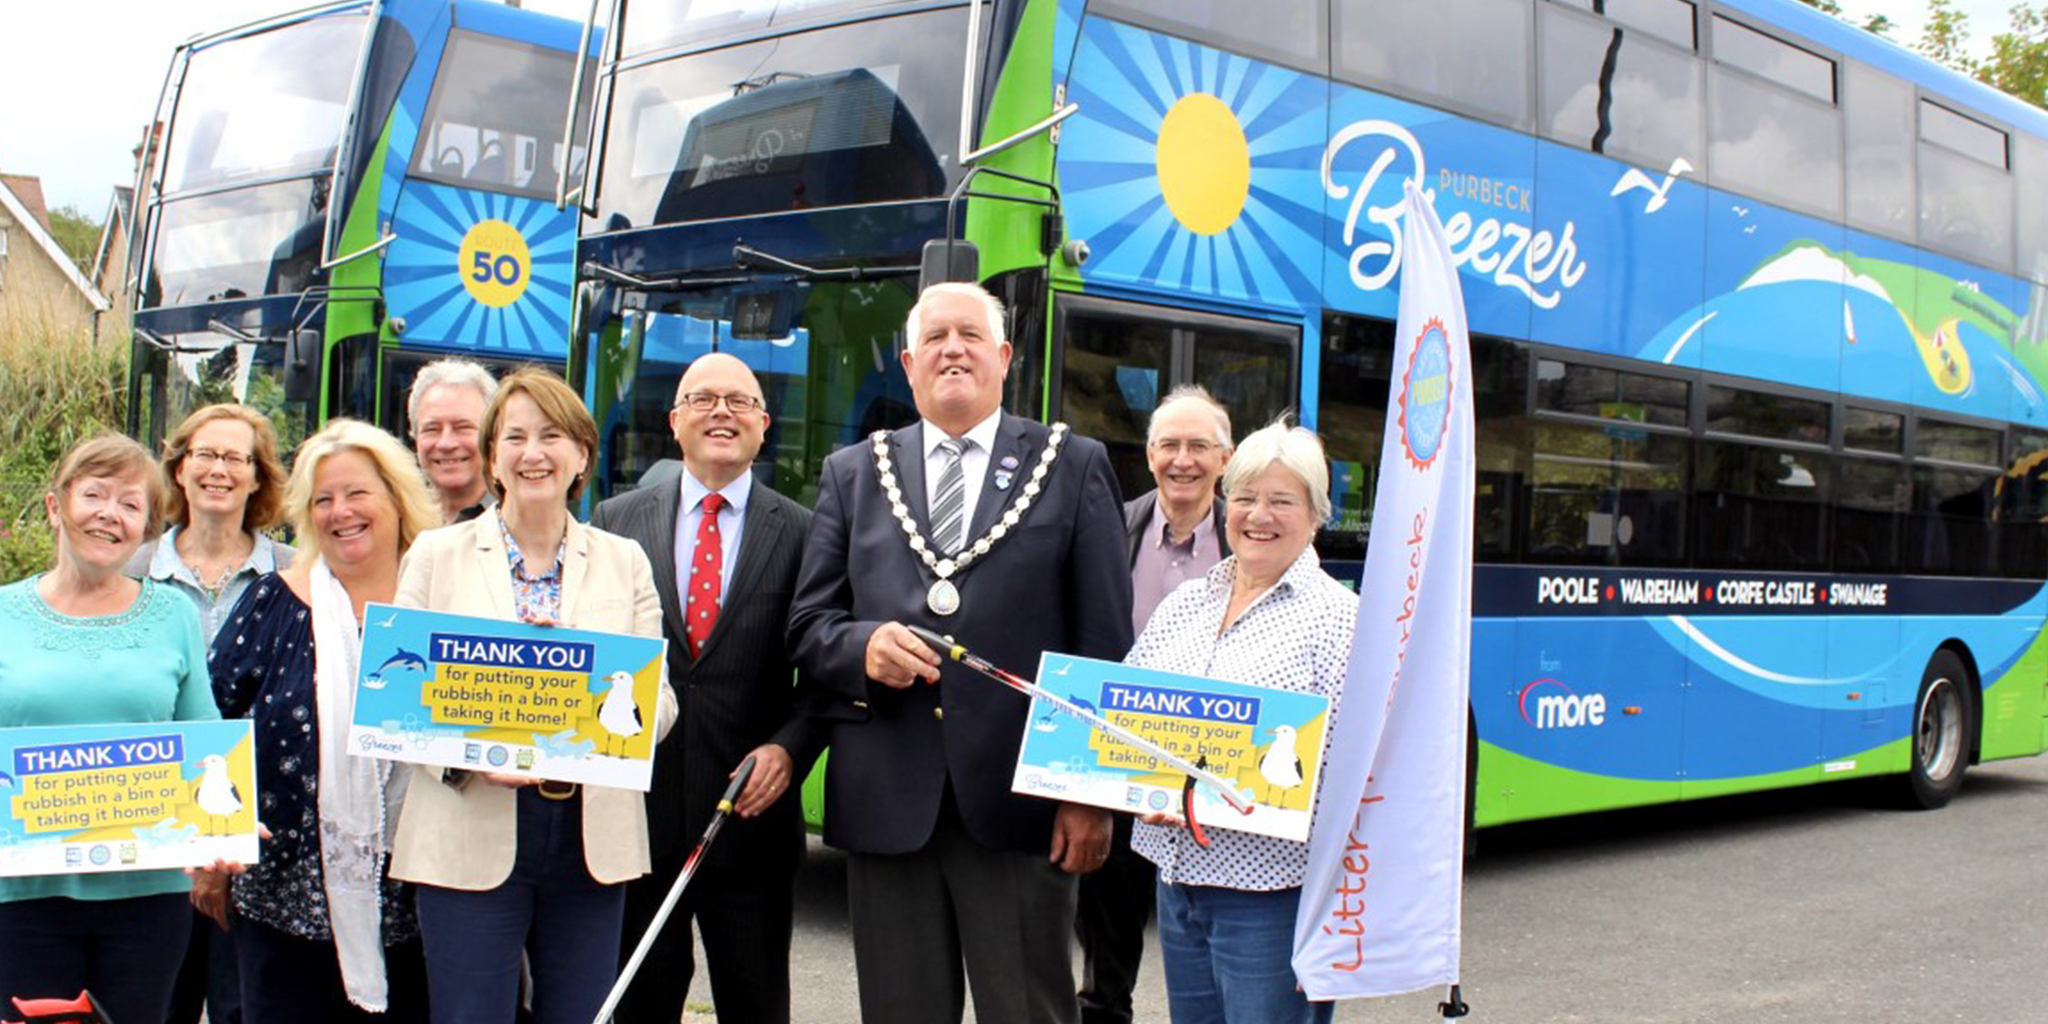 Photo of representatives from local councils and Litter-free Purbeck in front of a Purbeck Breezer bus